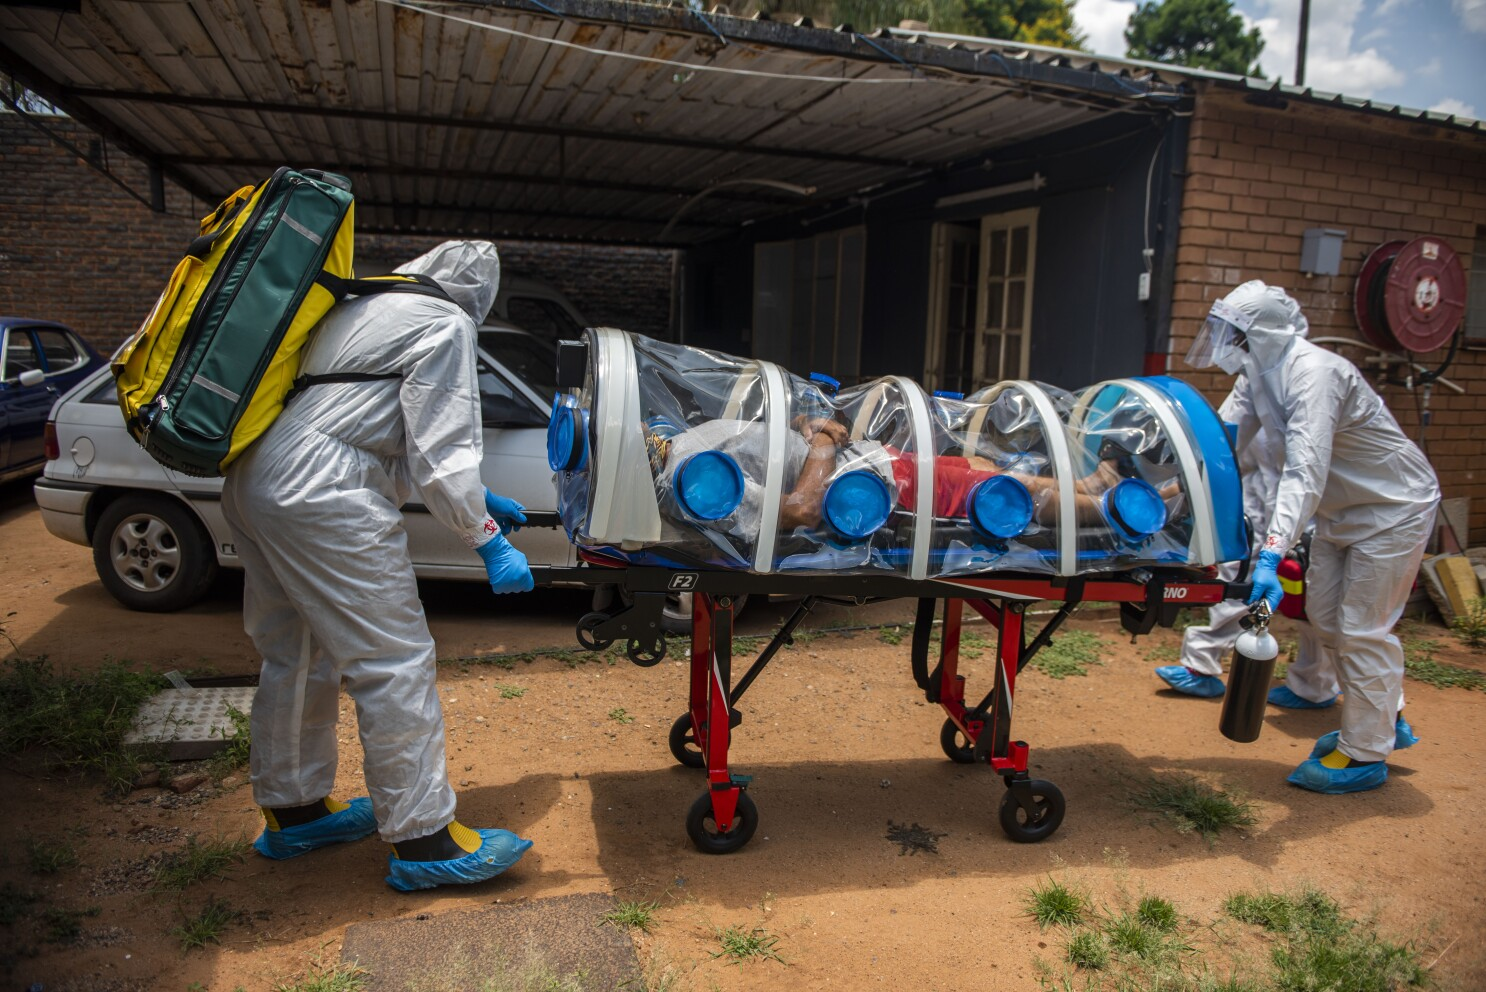 South Africa Announces Sweeping Coronavirus Rules Amid 3rd Wave Los Angeles Times